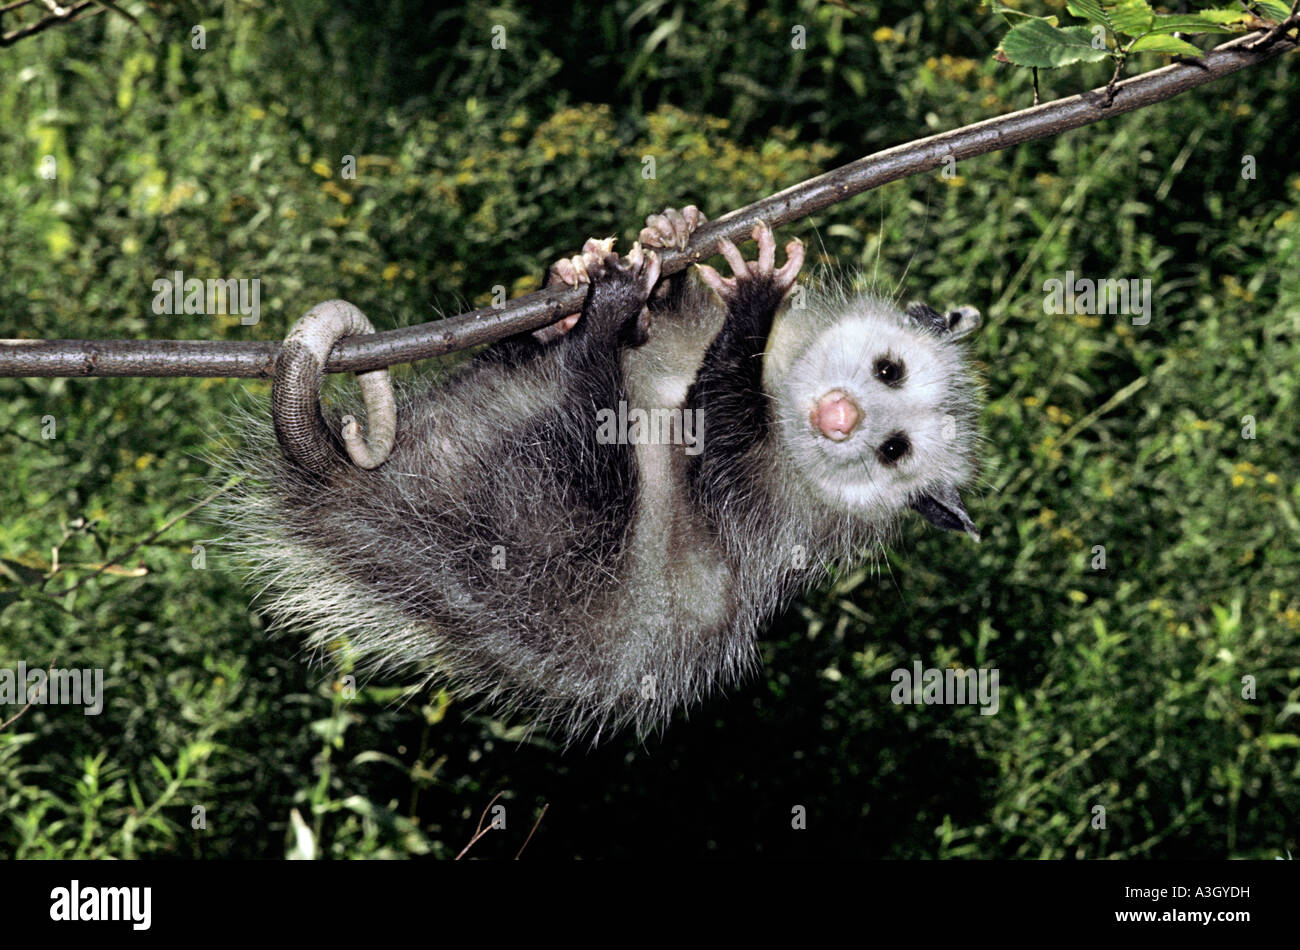 virginia opossum didelphis virginiana north america stock photo